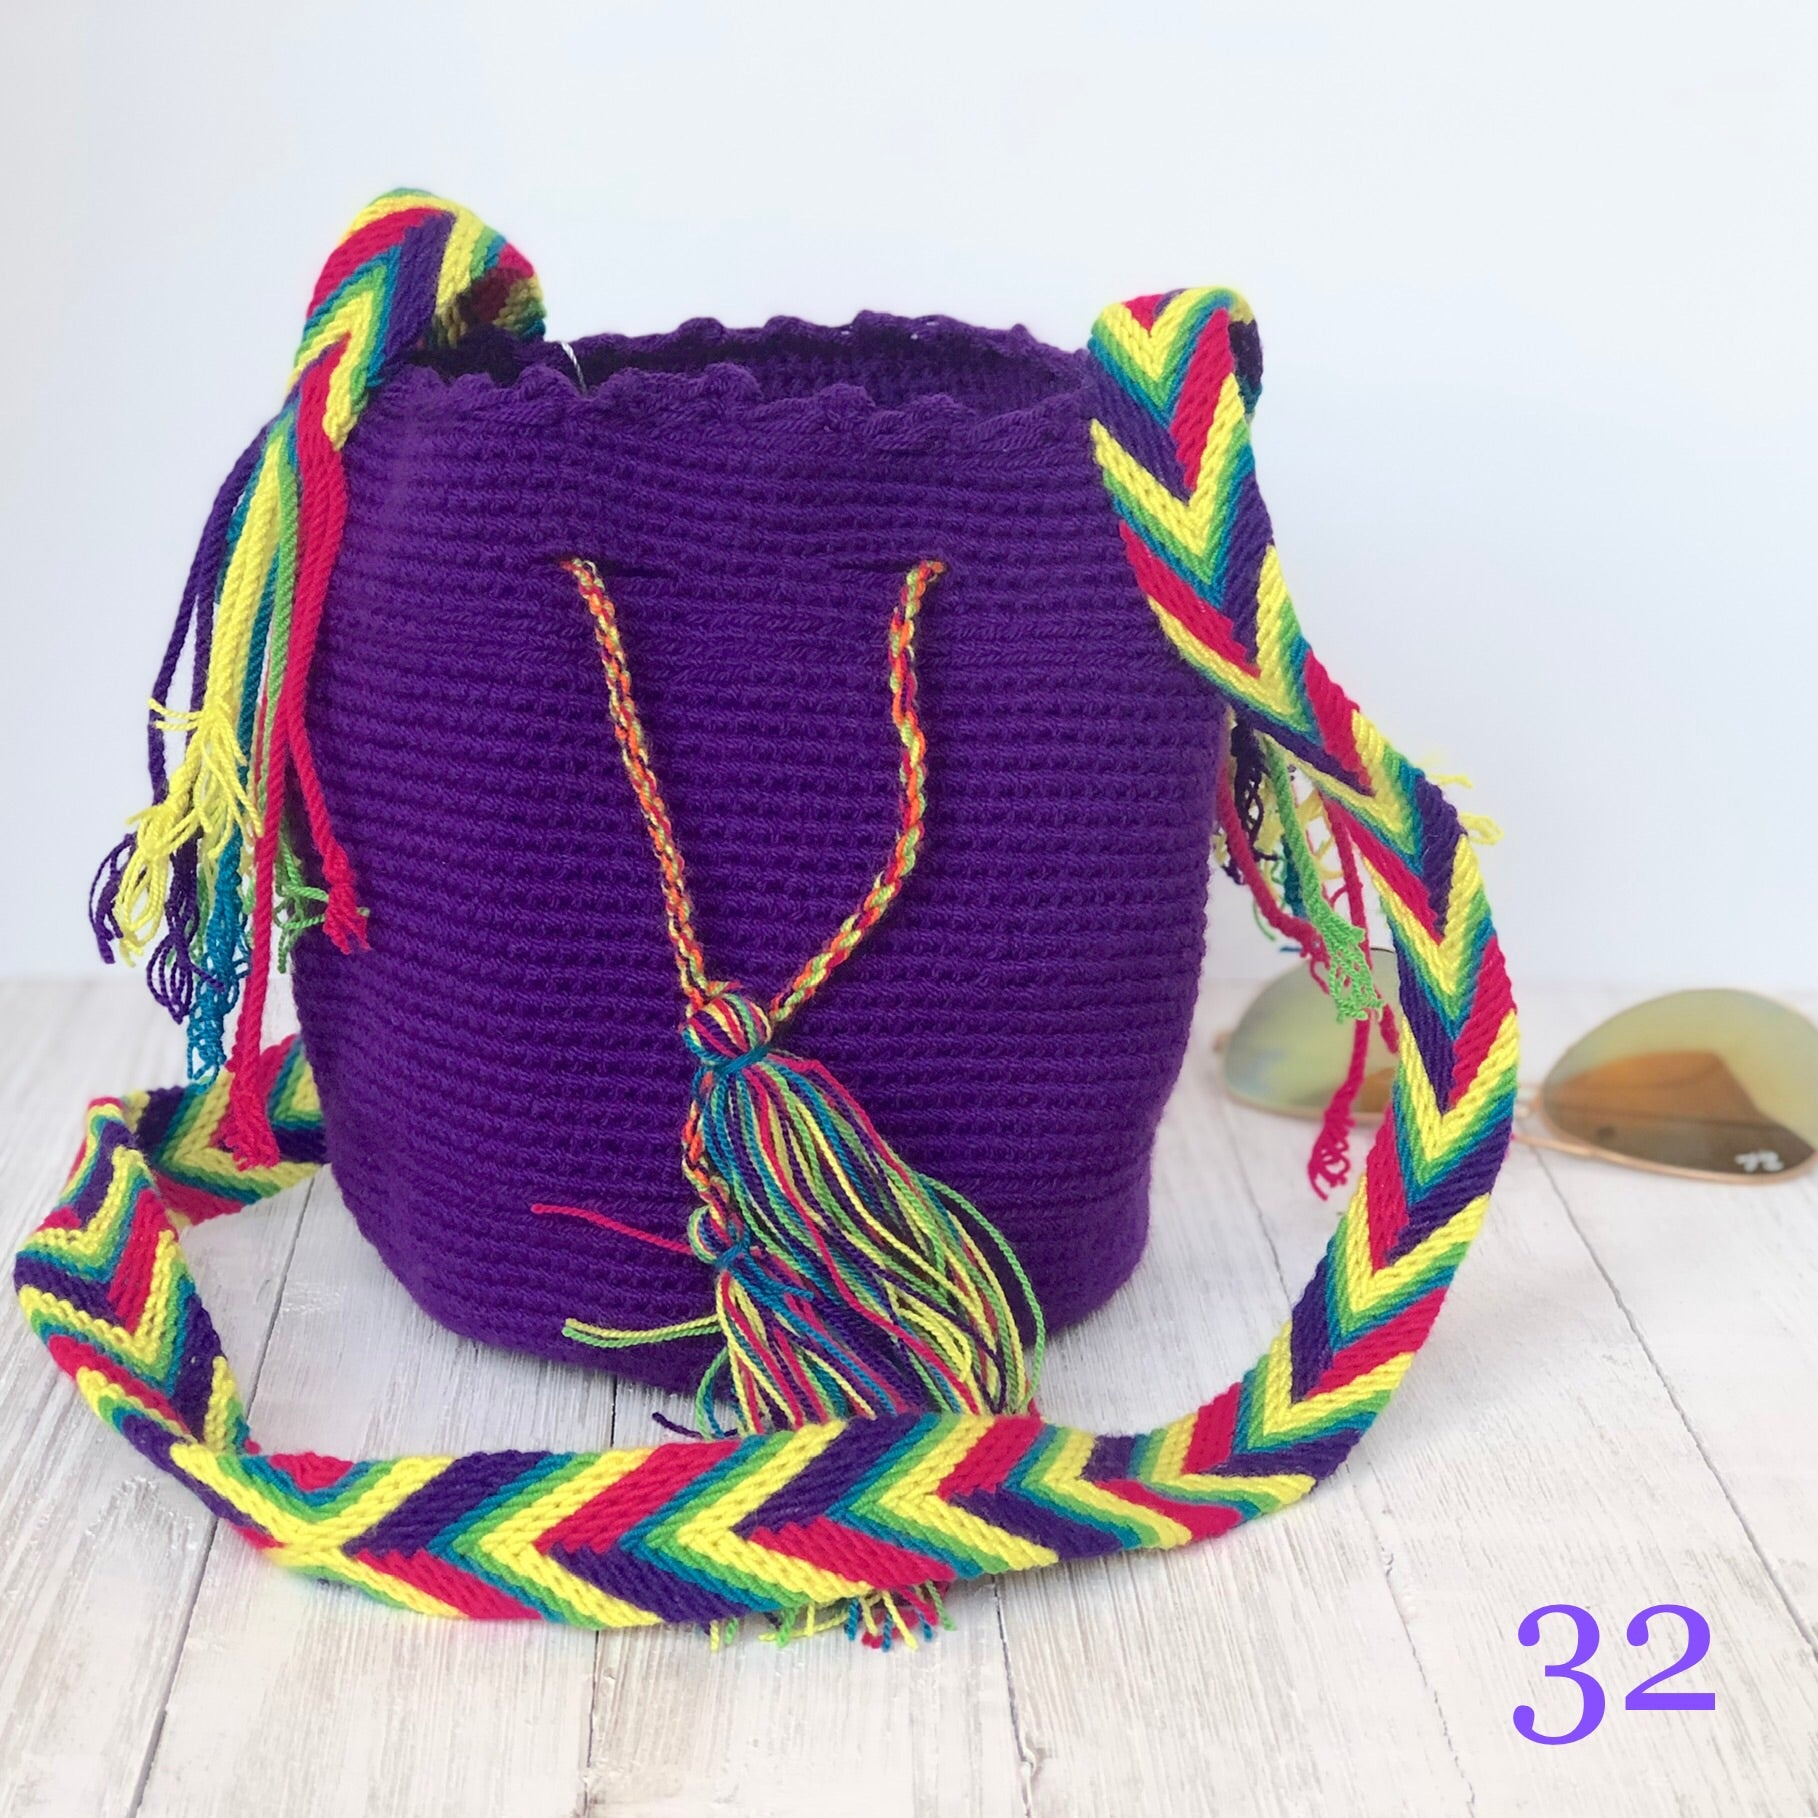 Purple Mini Crochet Bags-Small Wayuu Bags-Girls Summer Crossbody Bags